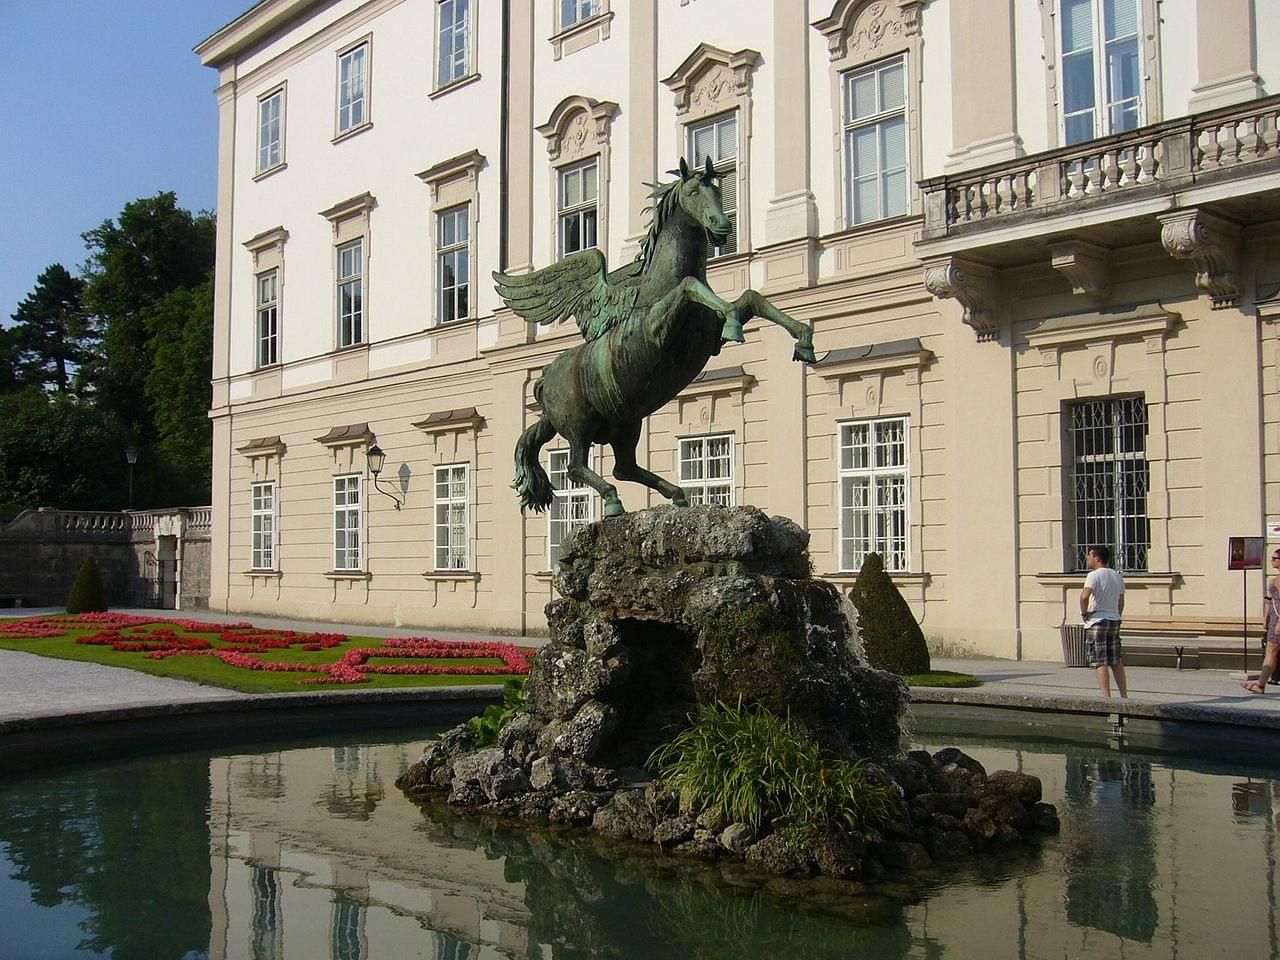 The winged horse of the fountain